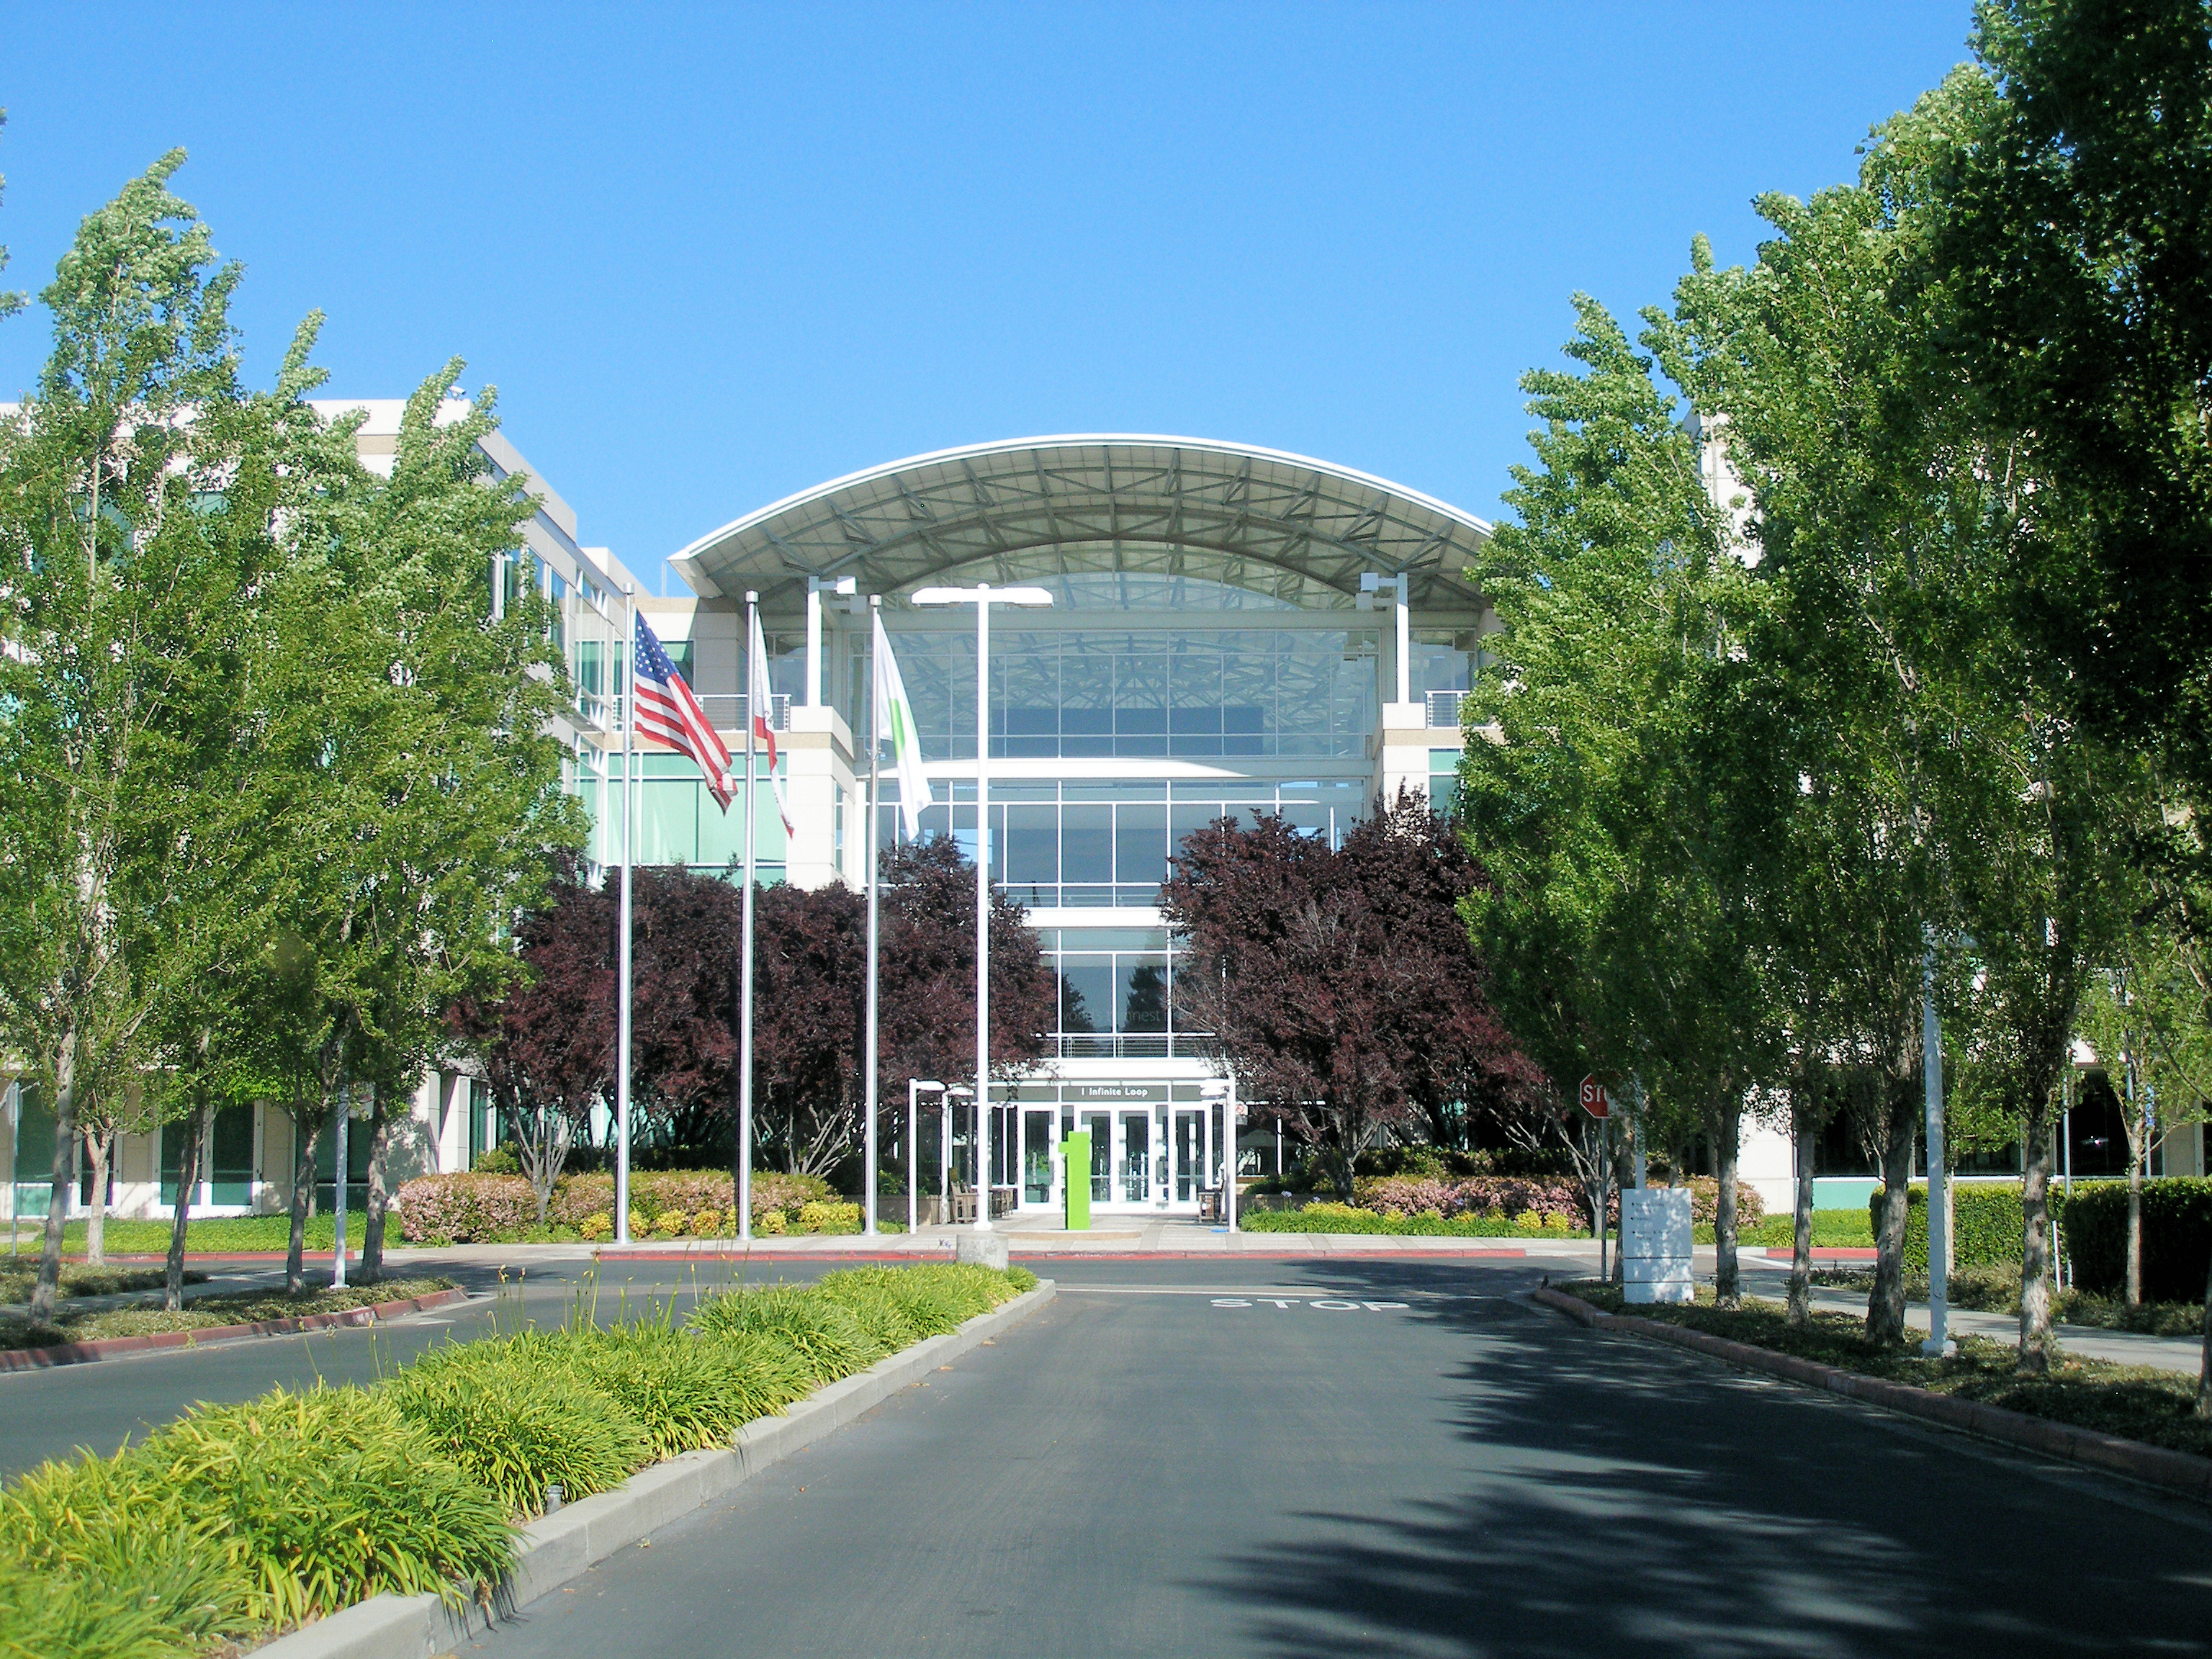 Steven Jobs And The Apple Headquarters In Cupertino